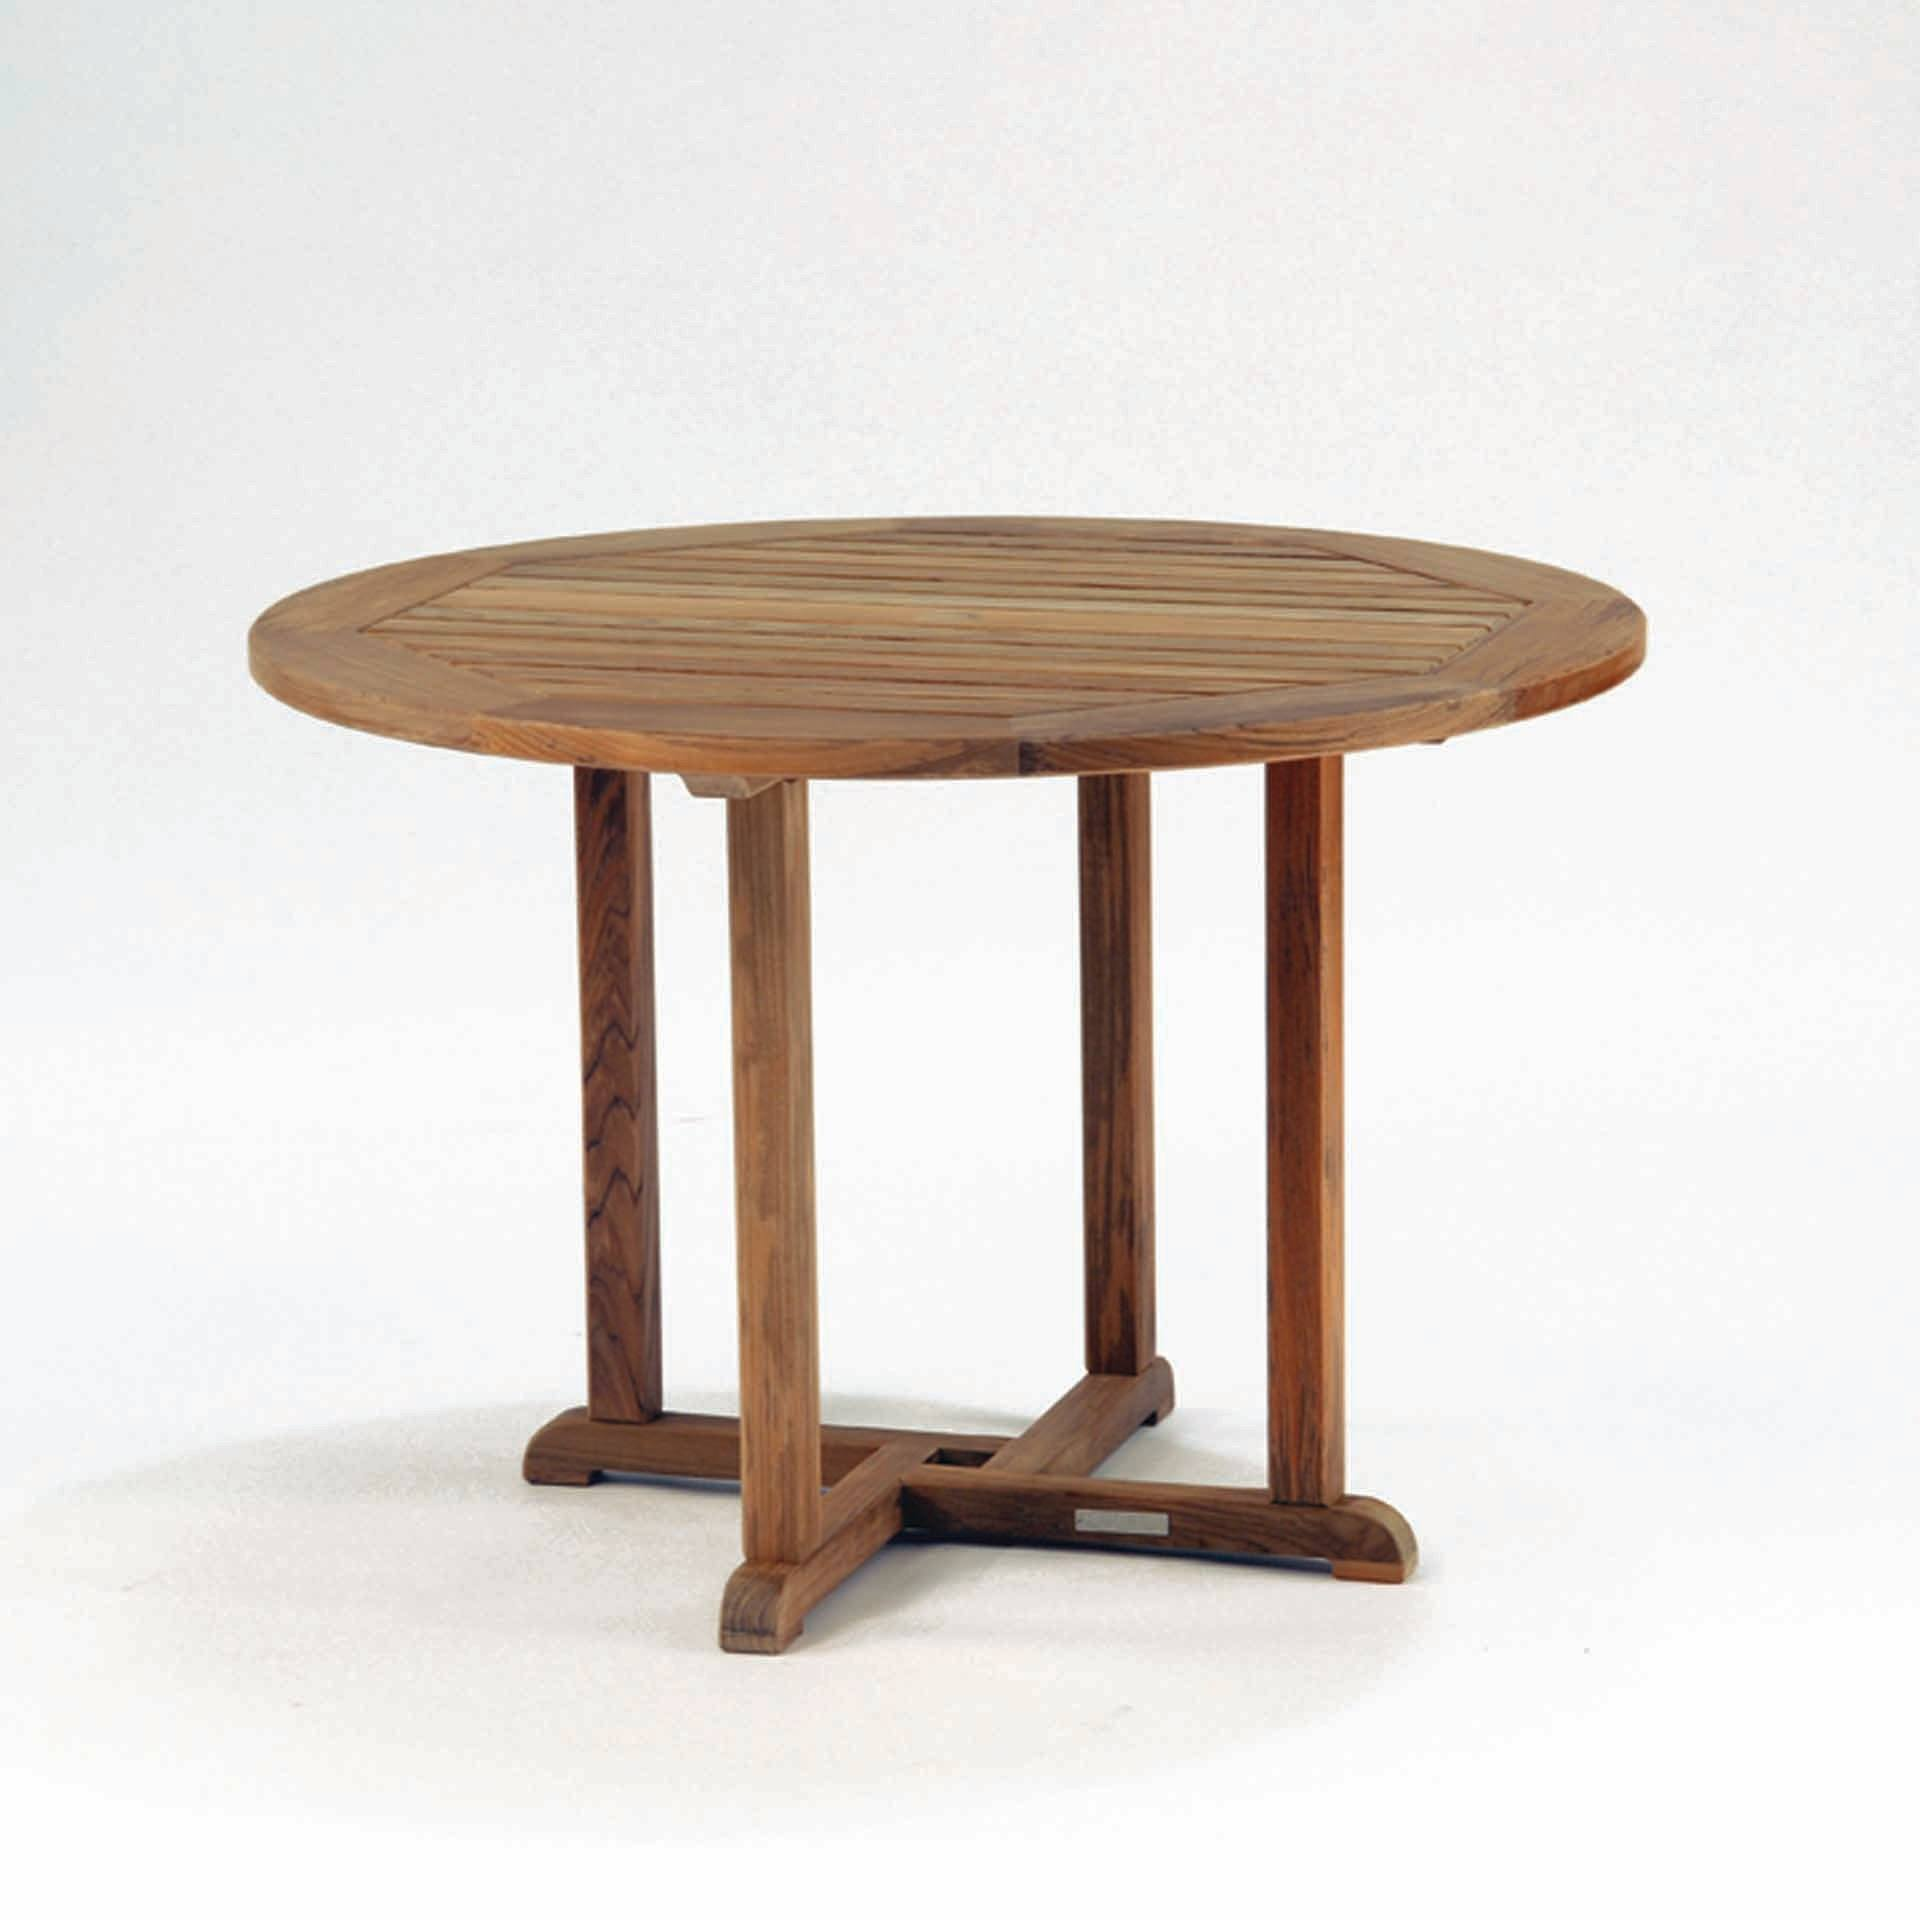 kingsley bate essex 50 round dining table   leisure living